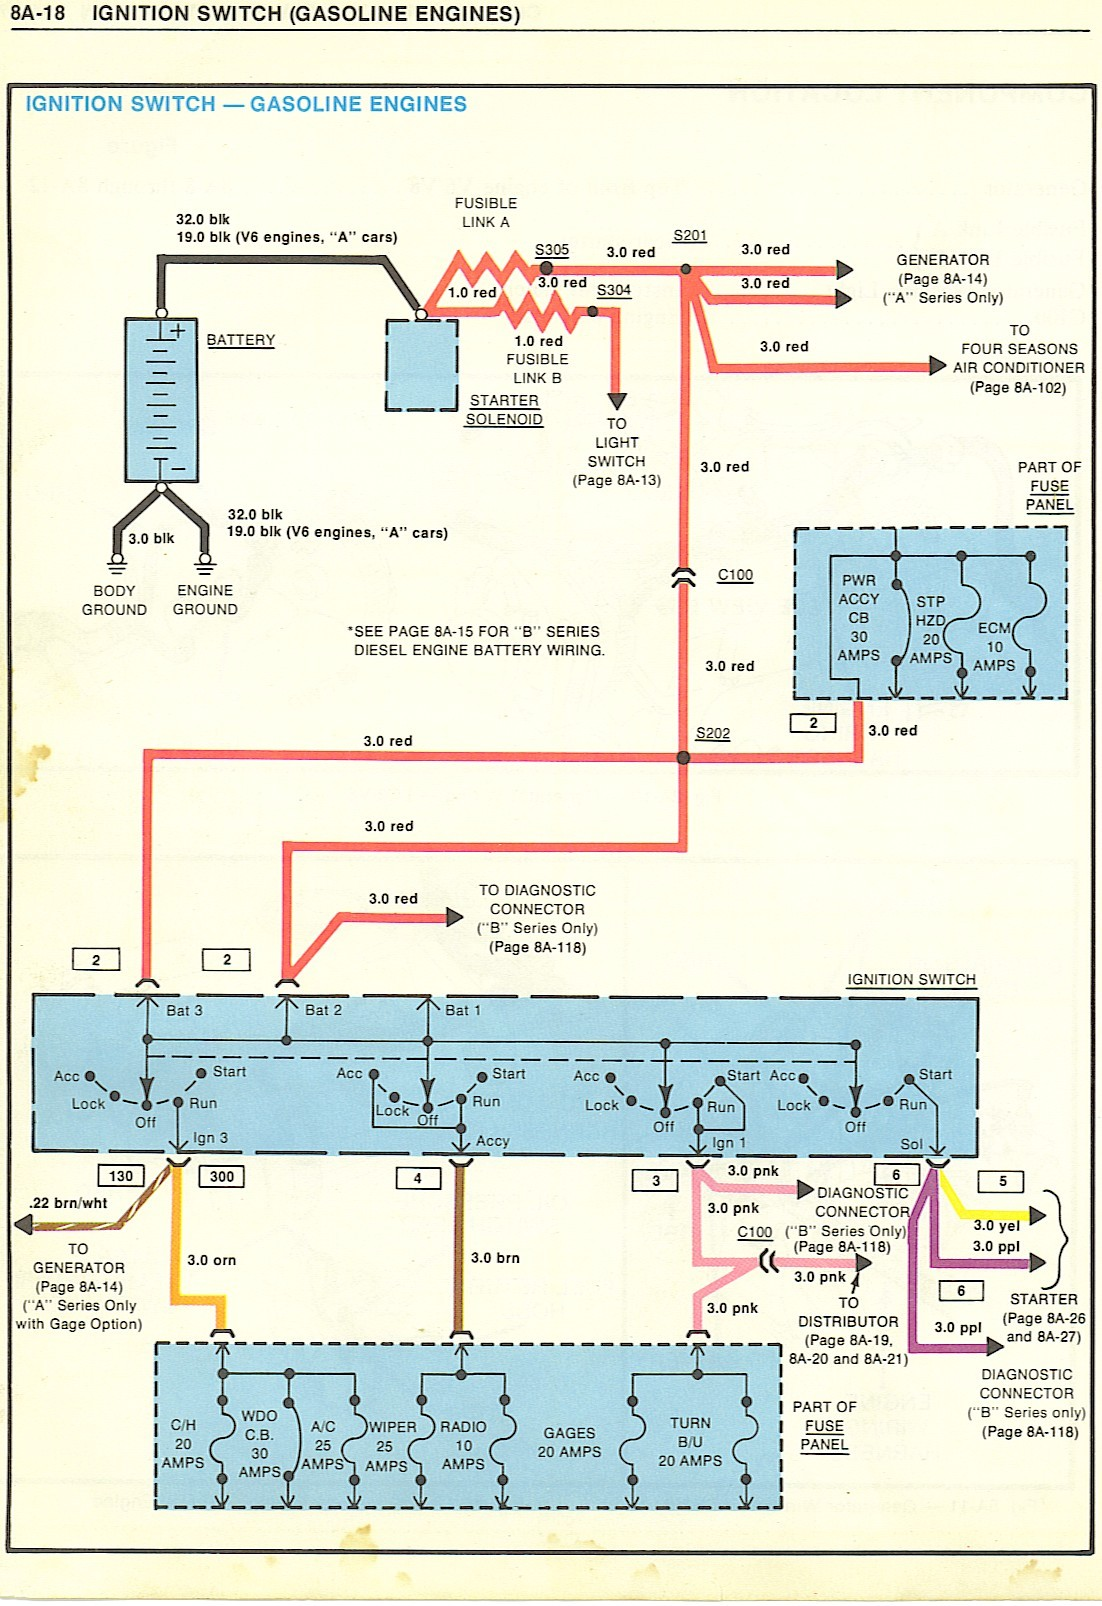 1971 Chevy Ignition Wiring Diagram Beacon Morris Wiring Diagram For Wiring Diagram Schematics